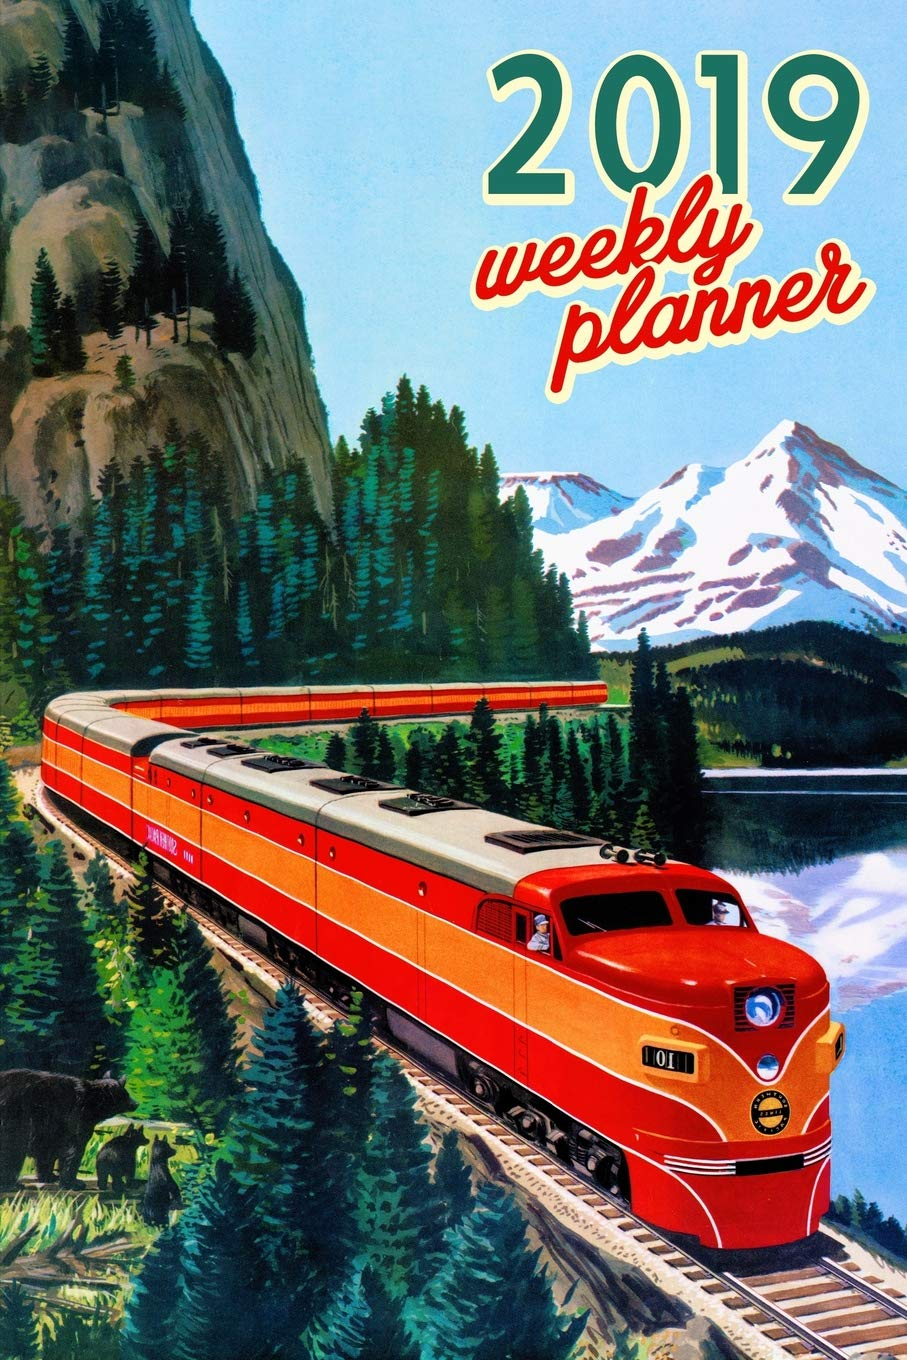 2019 Weekly Planner: Train Engine EMD E7 Organizer Schedule ...